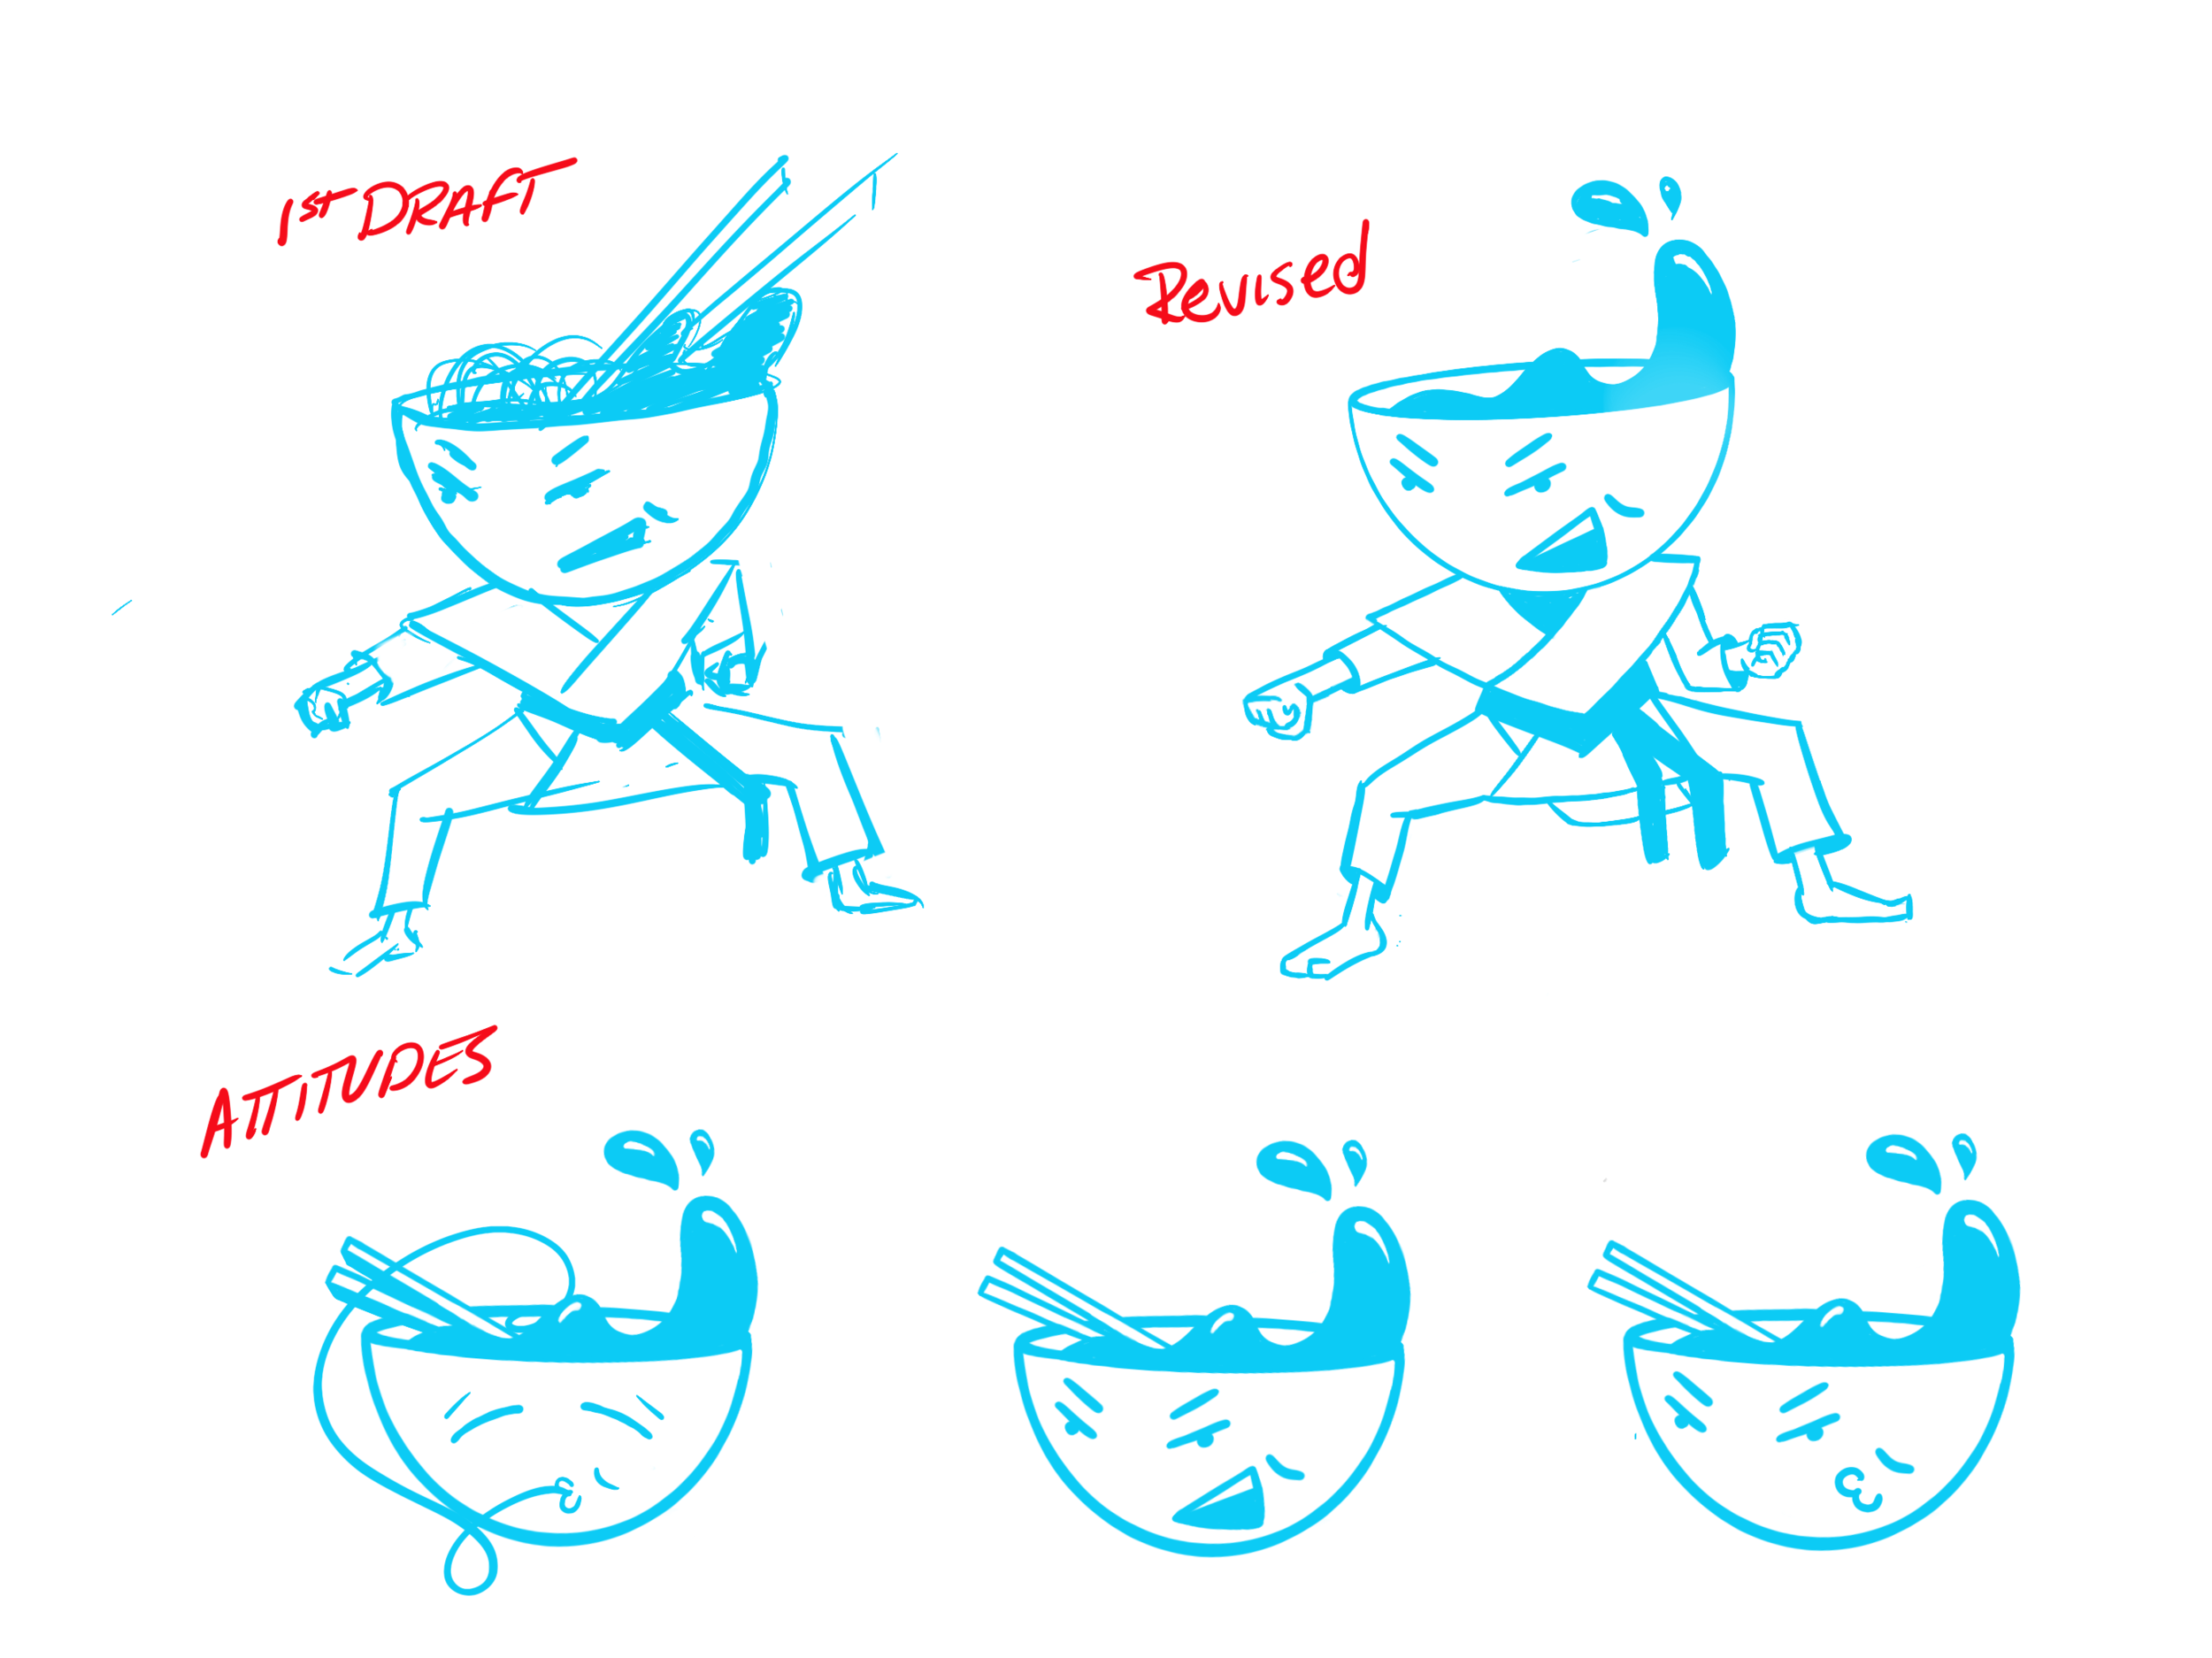 Fig. 8 - Early Character Design Explorations and Facial Expressions